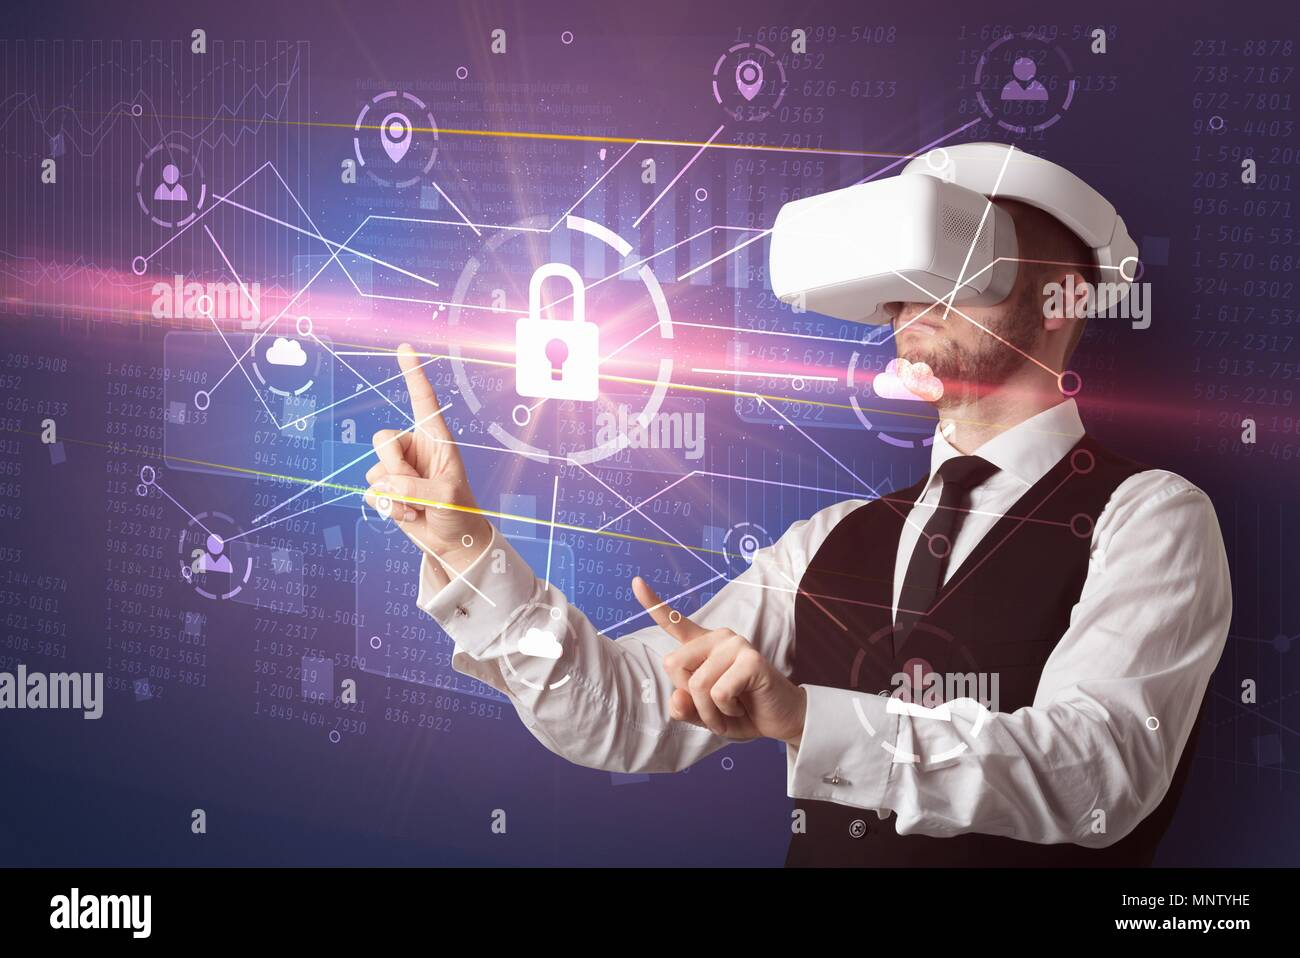 Businessman with DJI goggles controlling 3D illustrated network, and series on the background  - Stock Image